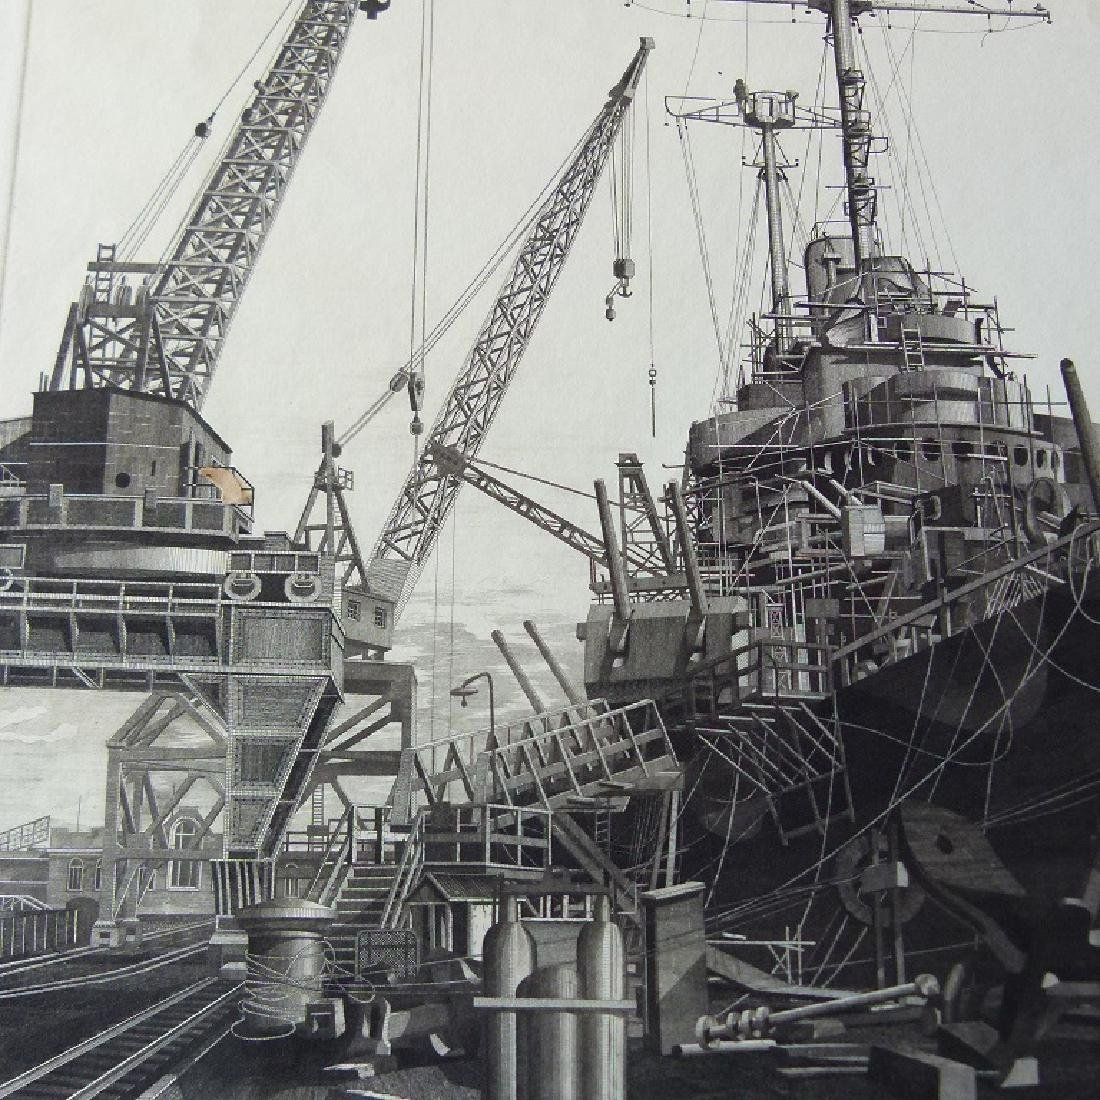 LOT (2) ETCHINGS, DOCKED SHIPS, JOHN TAYLOR ARMS - 5